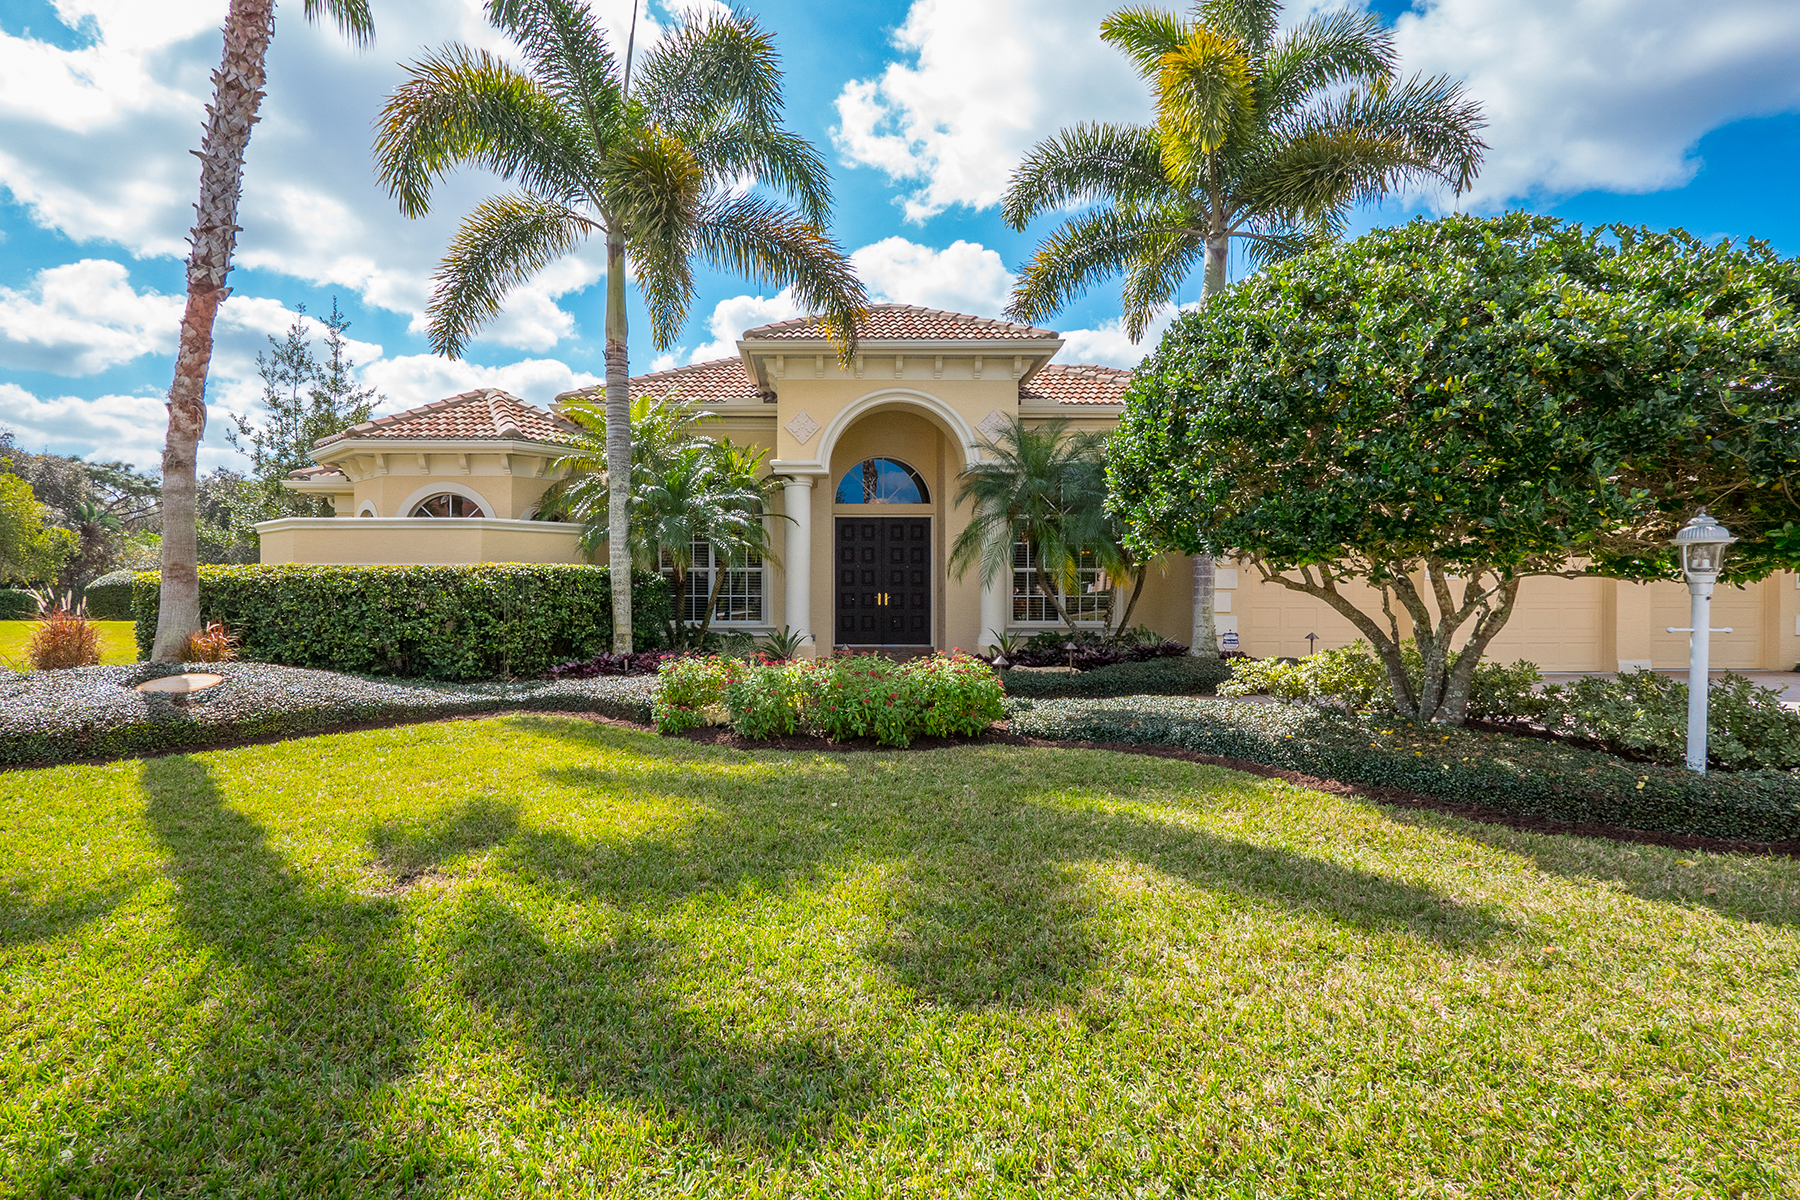 Single Family Home for Sale at 7024 Beechmont Terr , Lakewood Ranch, FL 34202 7024 Beechmont Terr Lakewood Ranch, Florida, 34202 United States